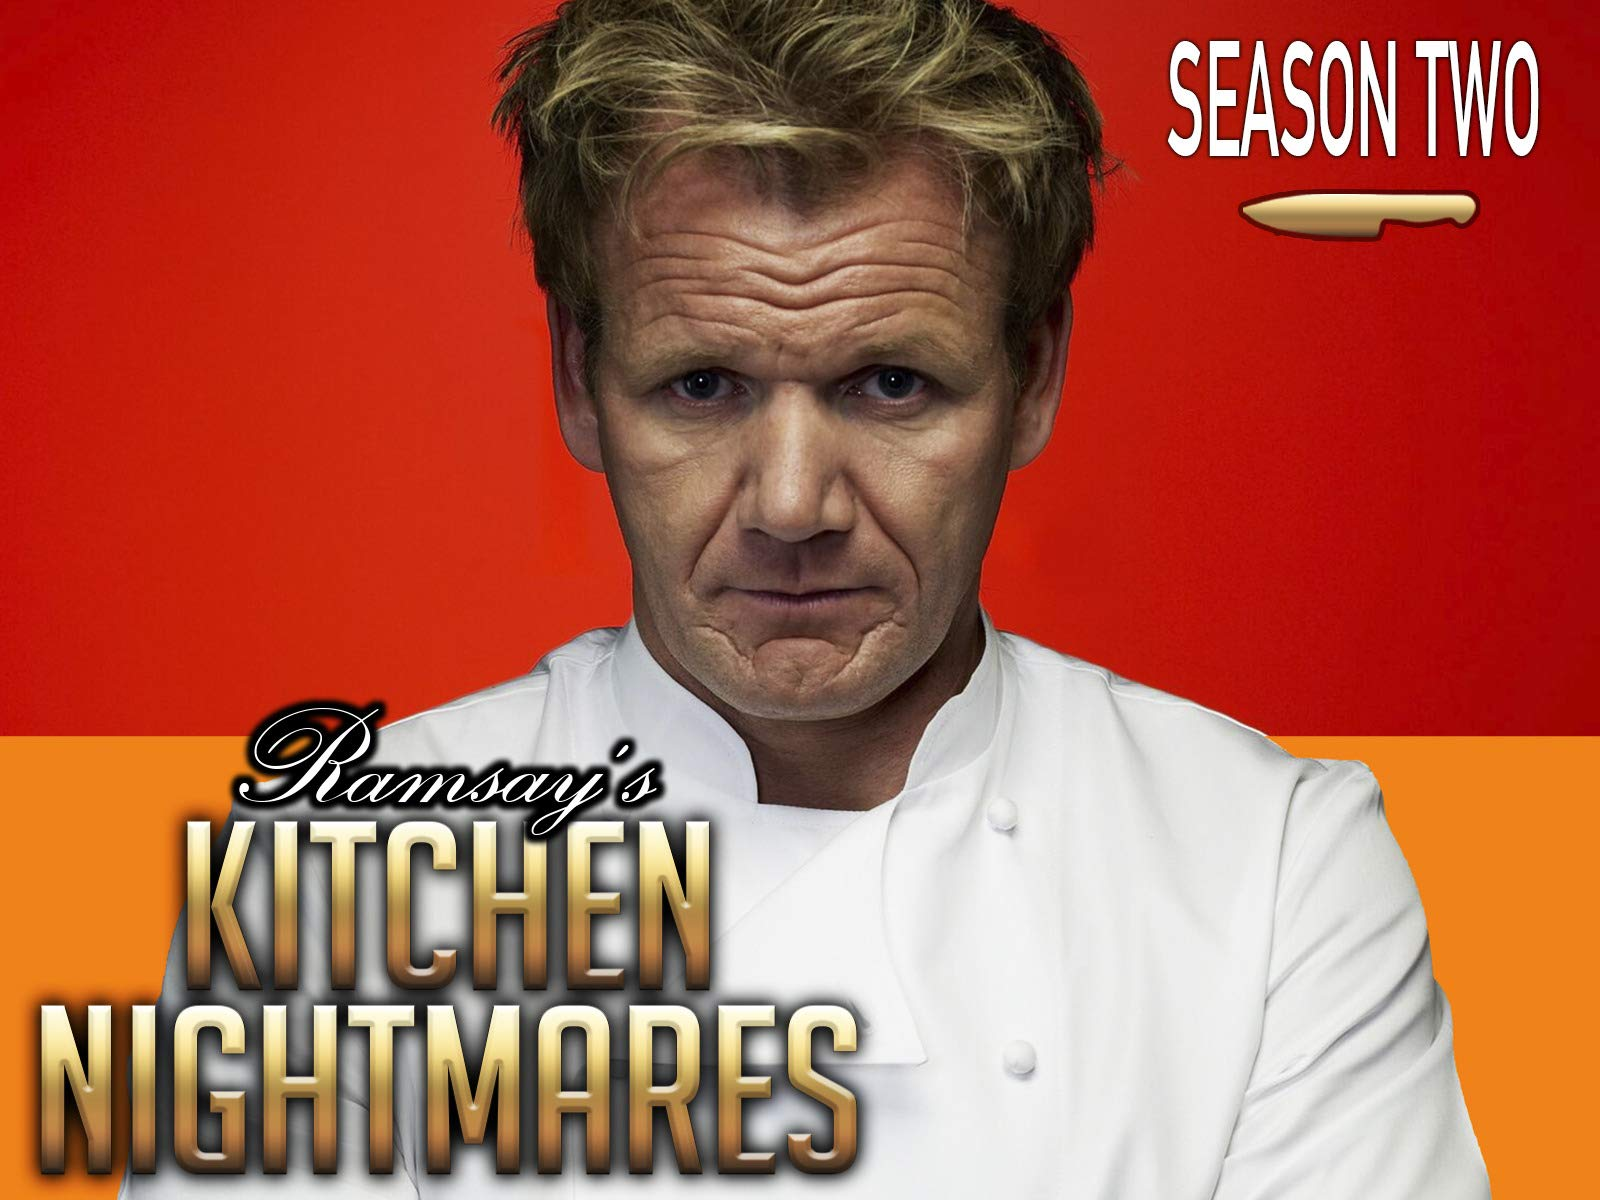 Ramsay's Kitchen Nightmares - Season 2